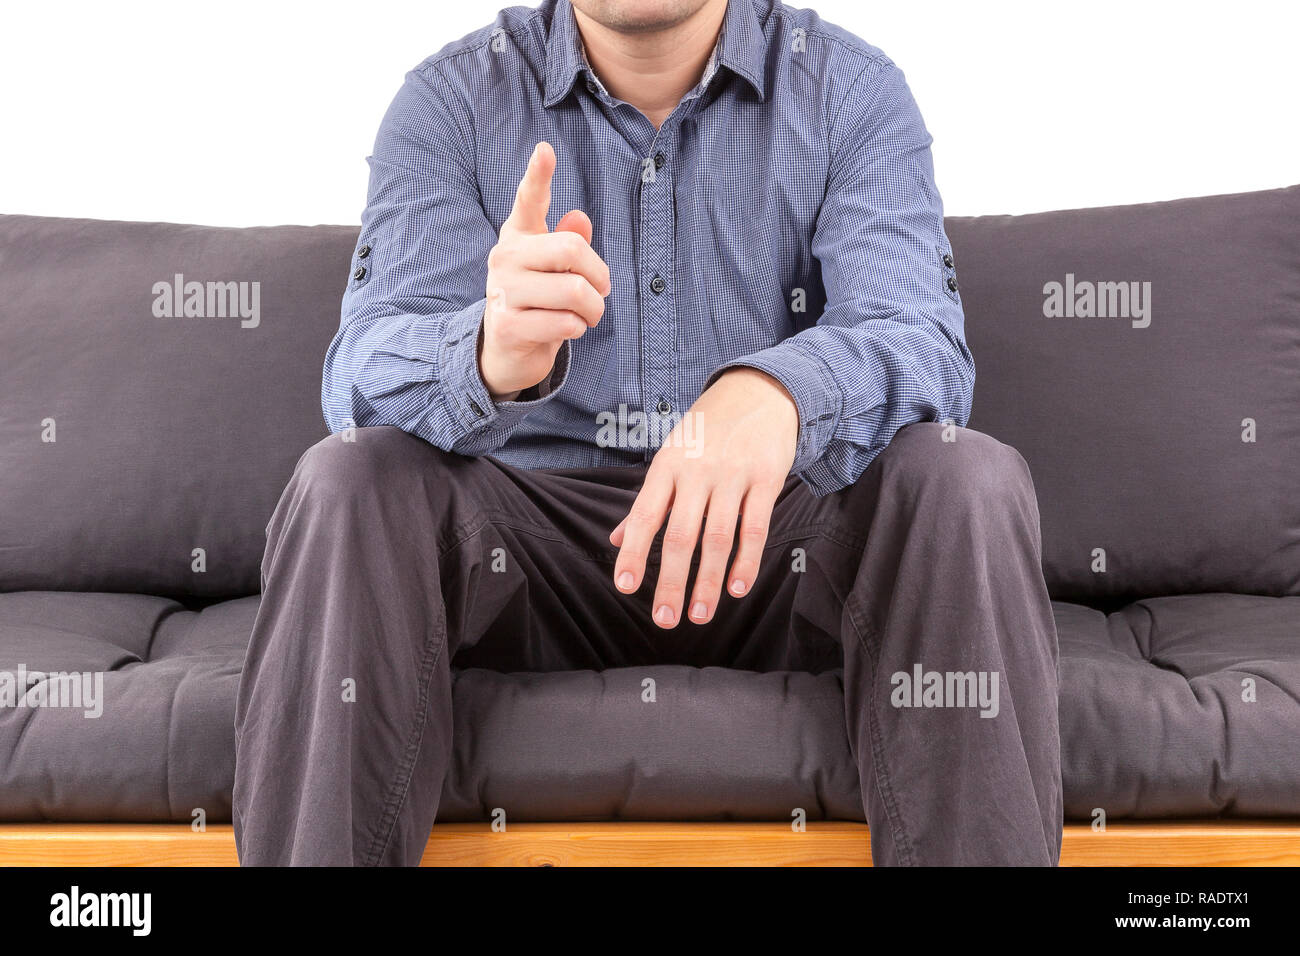 Manager on sofa raising finger in warning gesture. Mentor and leadership concept. - Stock Image